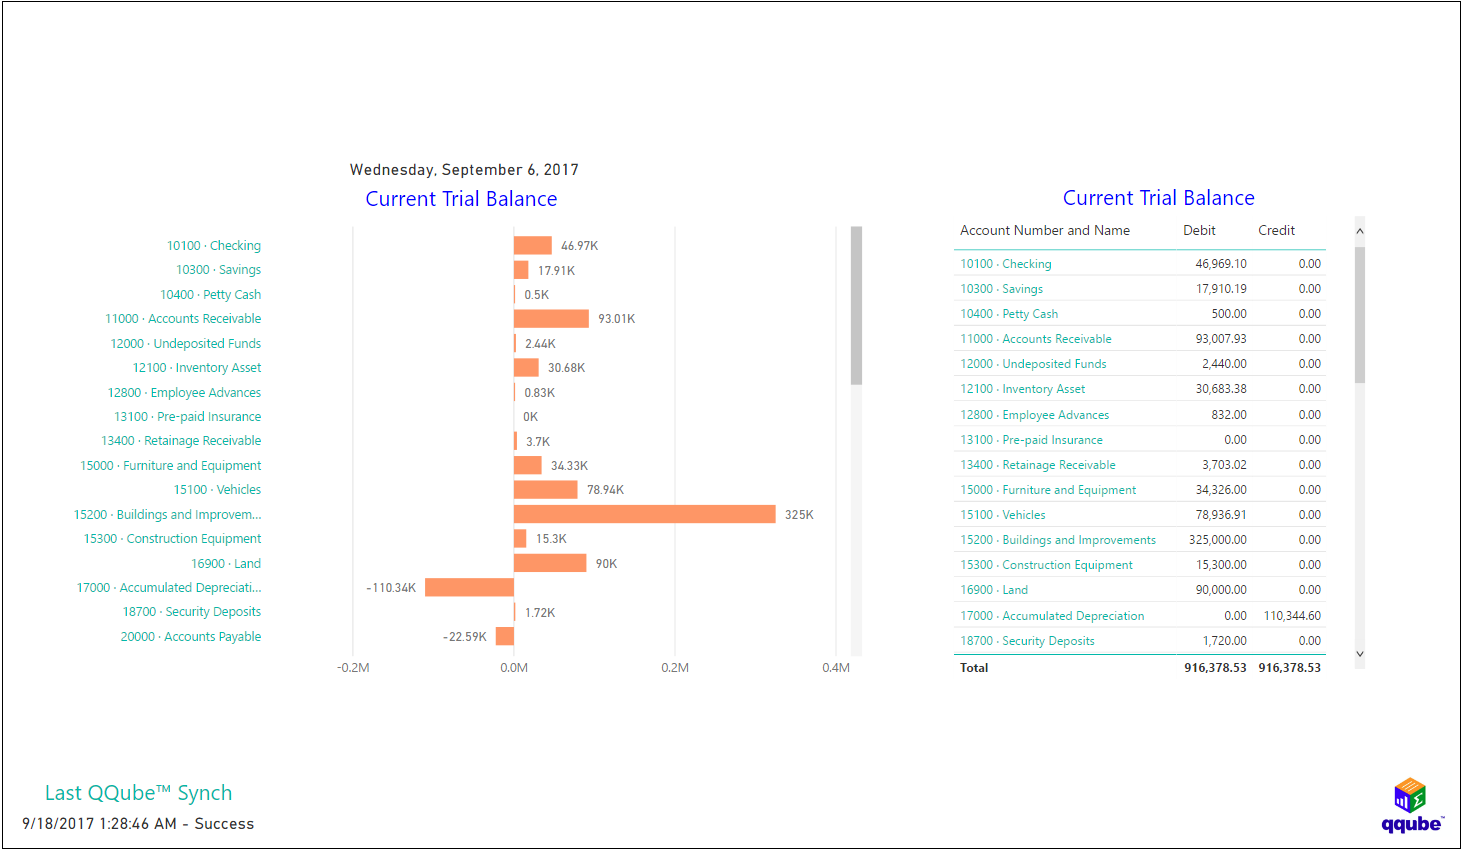 QQube and Power BI - Current Trial Balance